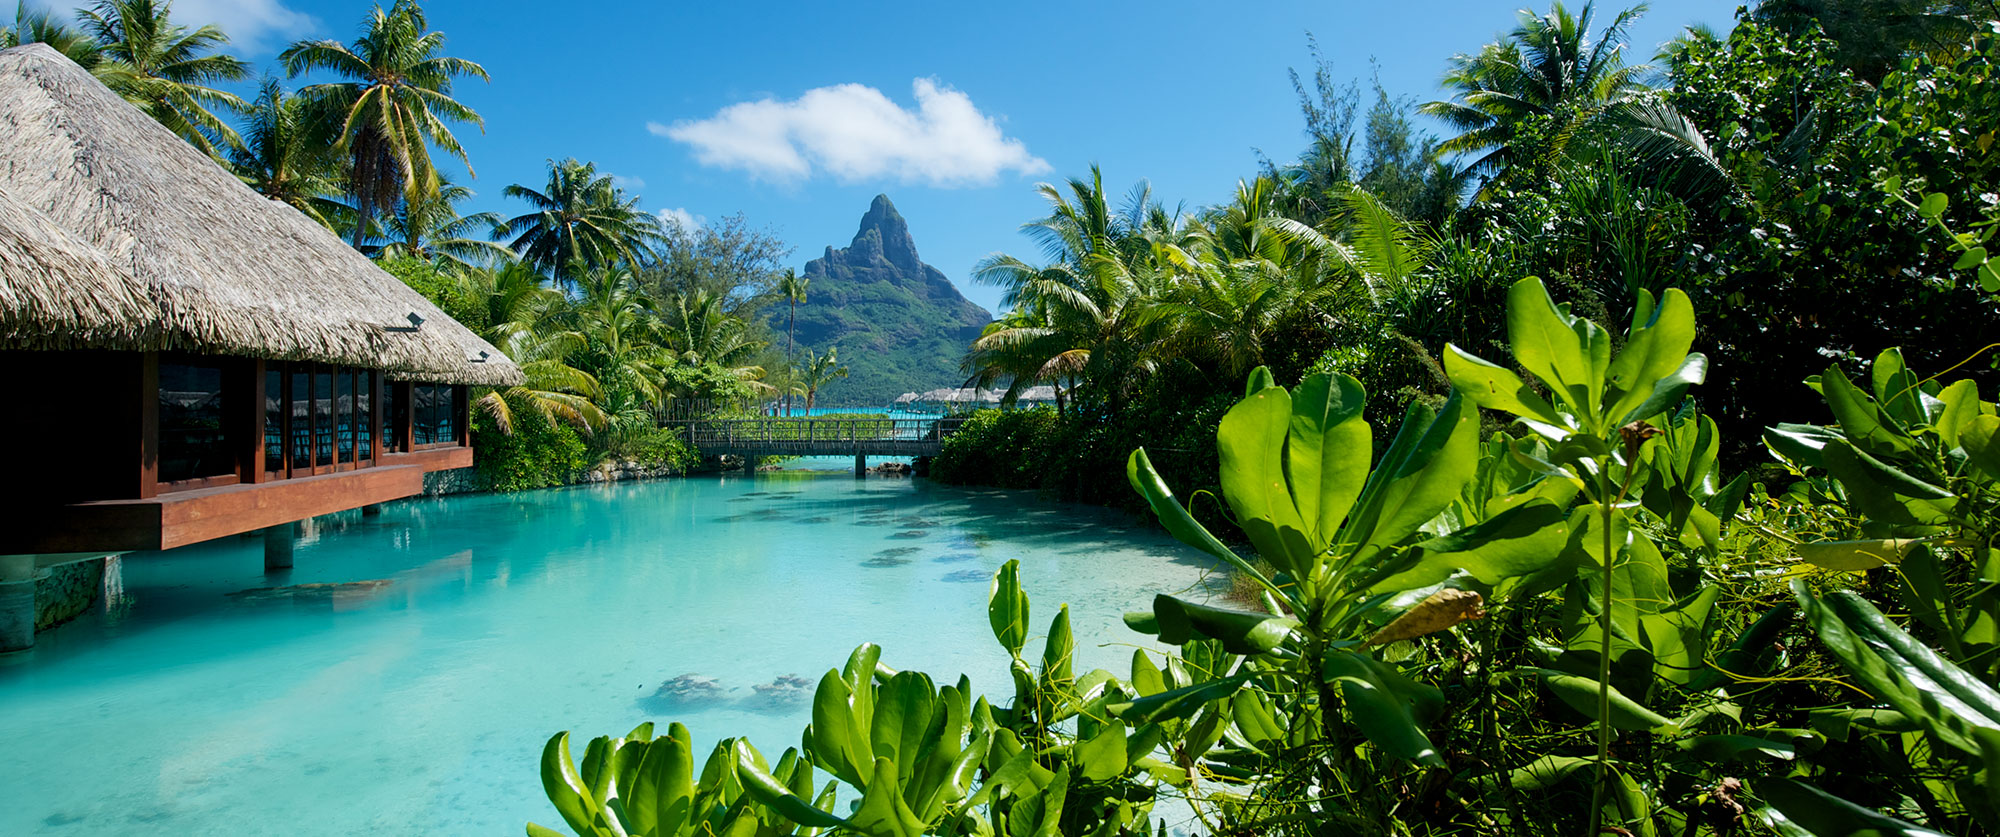 Bora Bora Overwater Bungalow and Spa Vacation